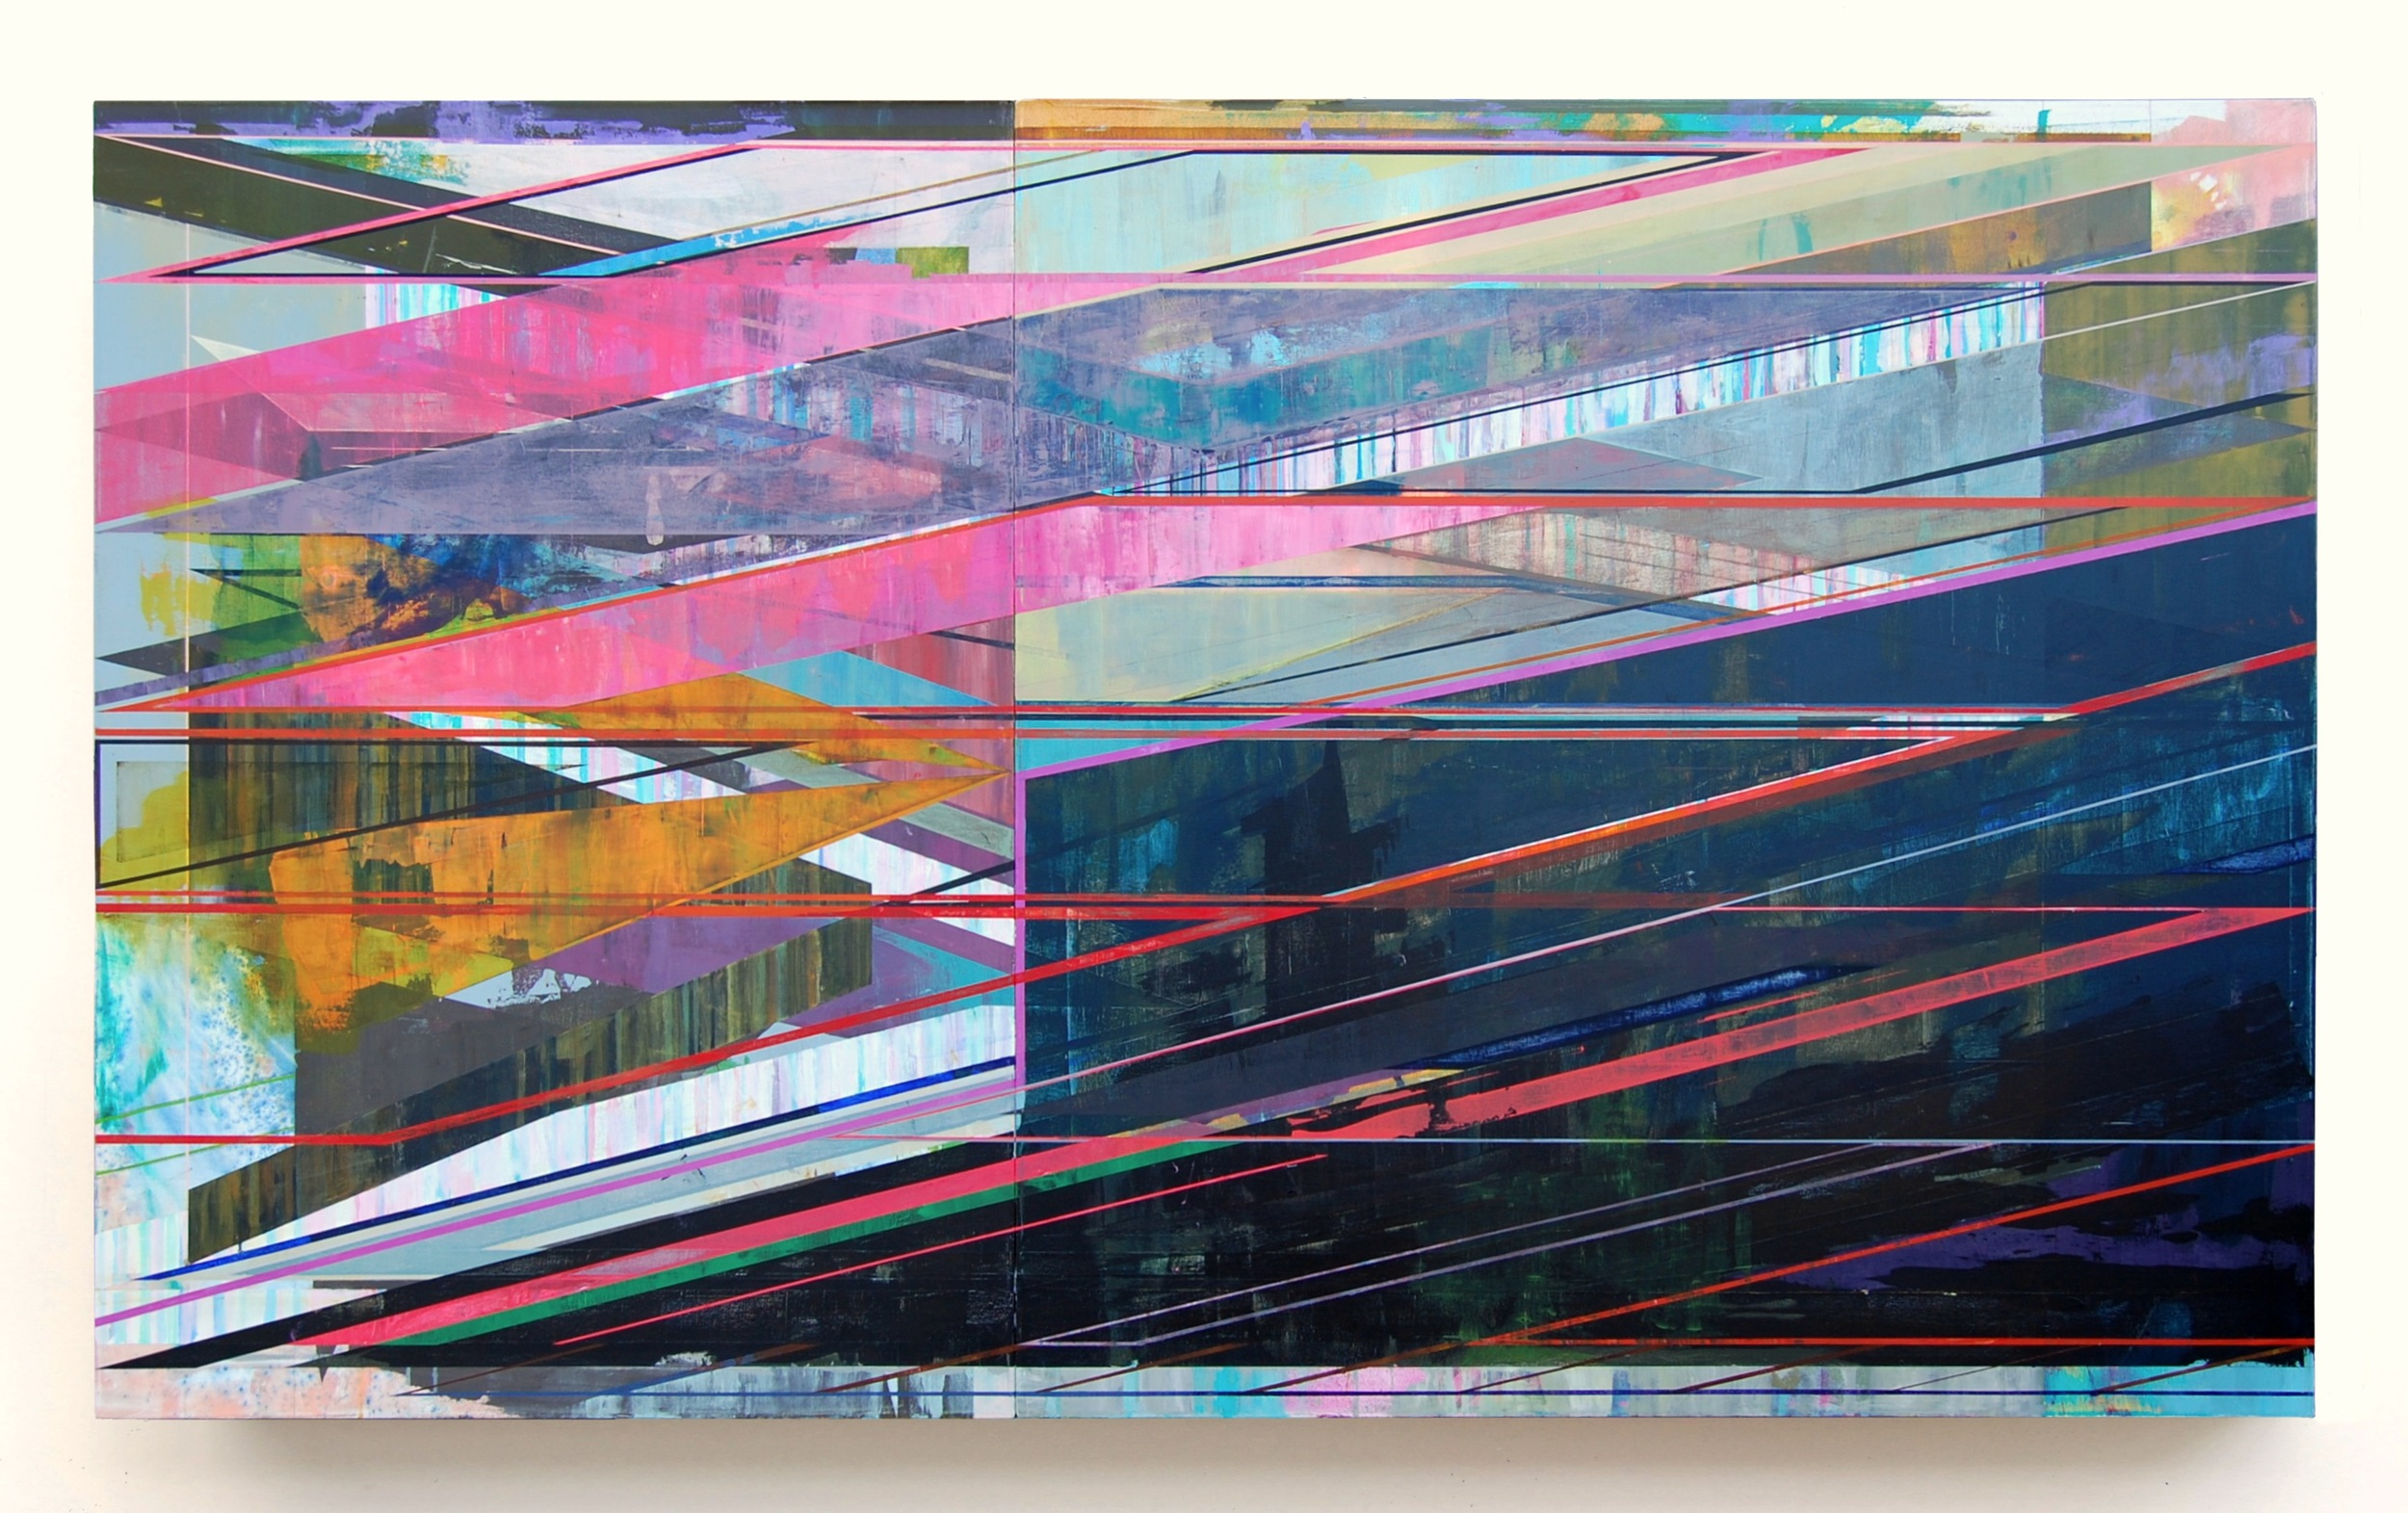 JOE LLOYD, Slant, 2016, acrylic on canvas, 56 x 96 inches